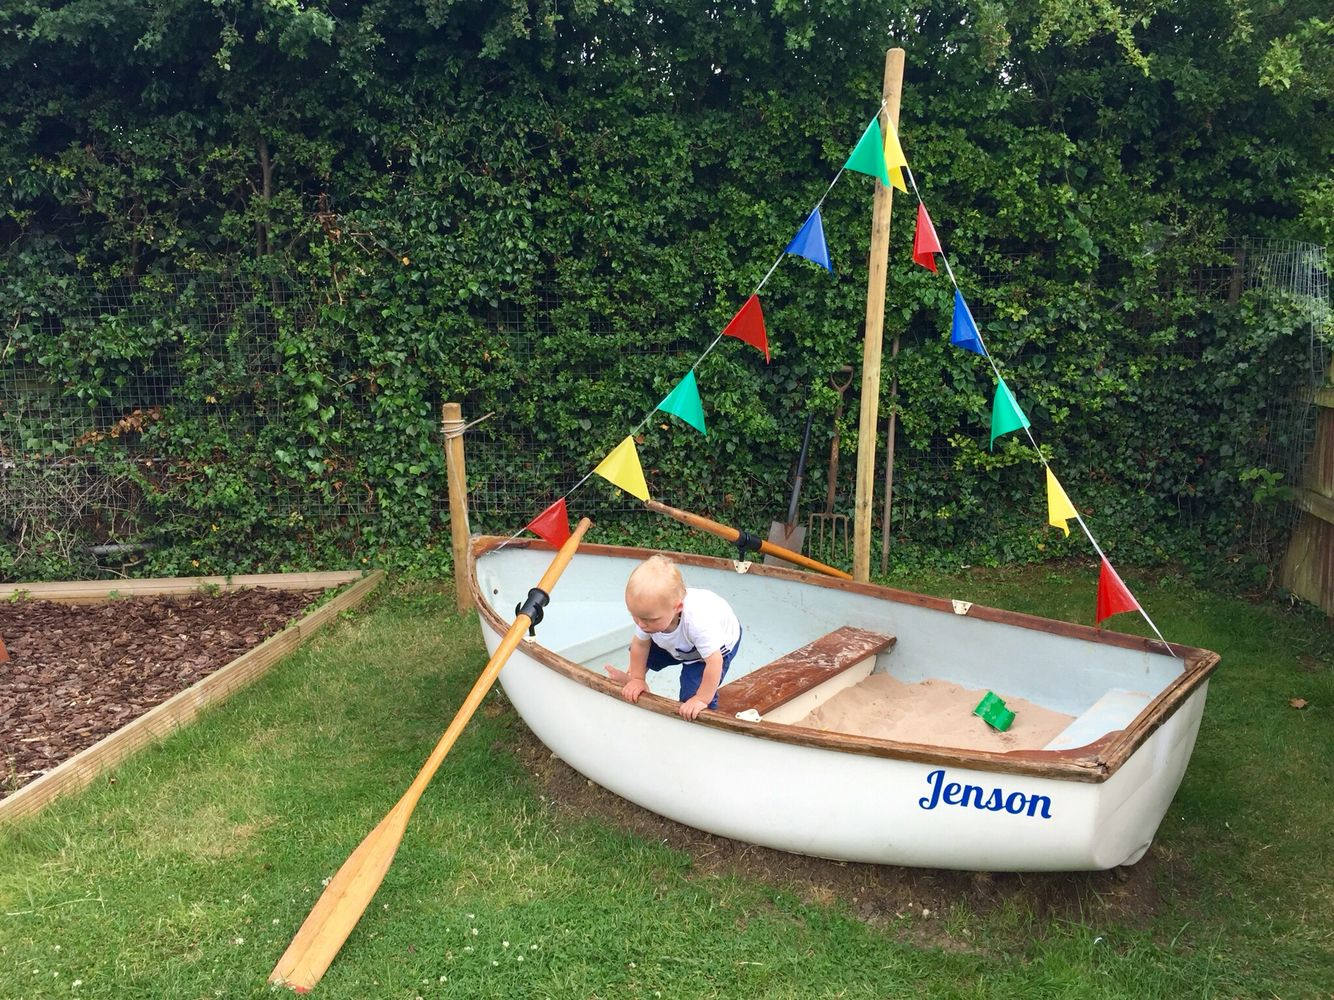 turned an old fiberglass sailing boat into a huge sandbox for the